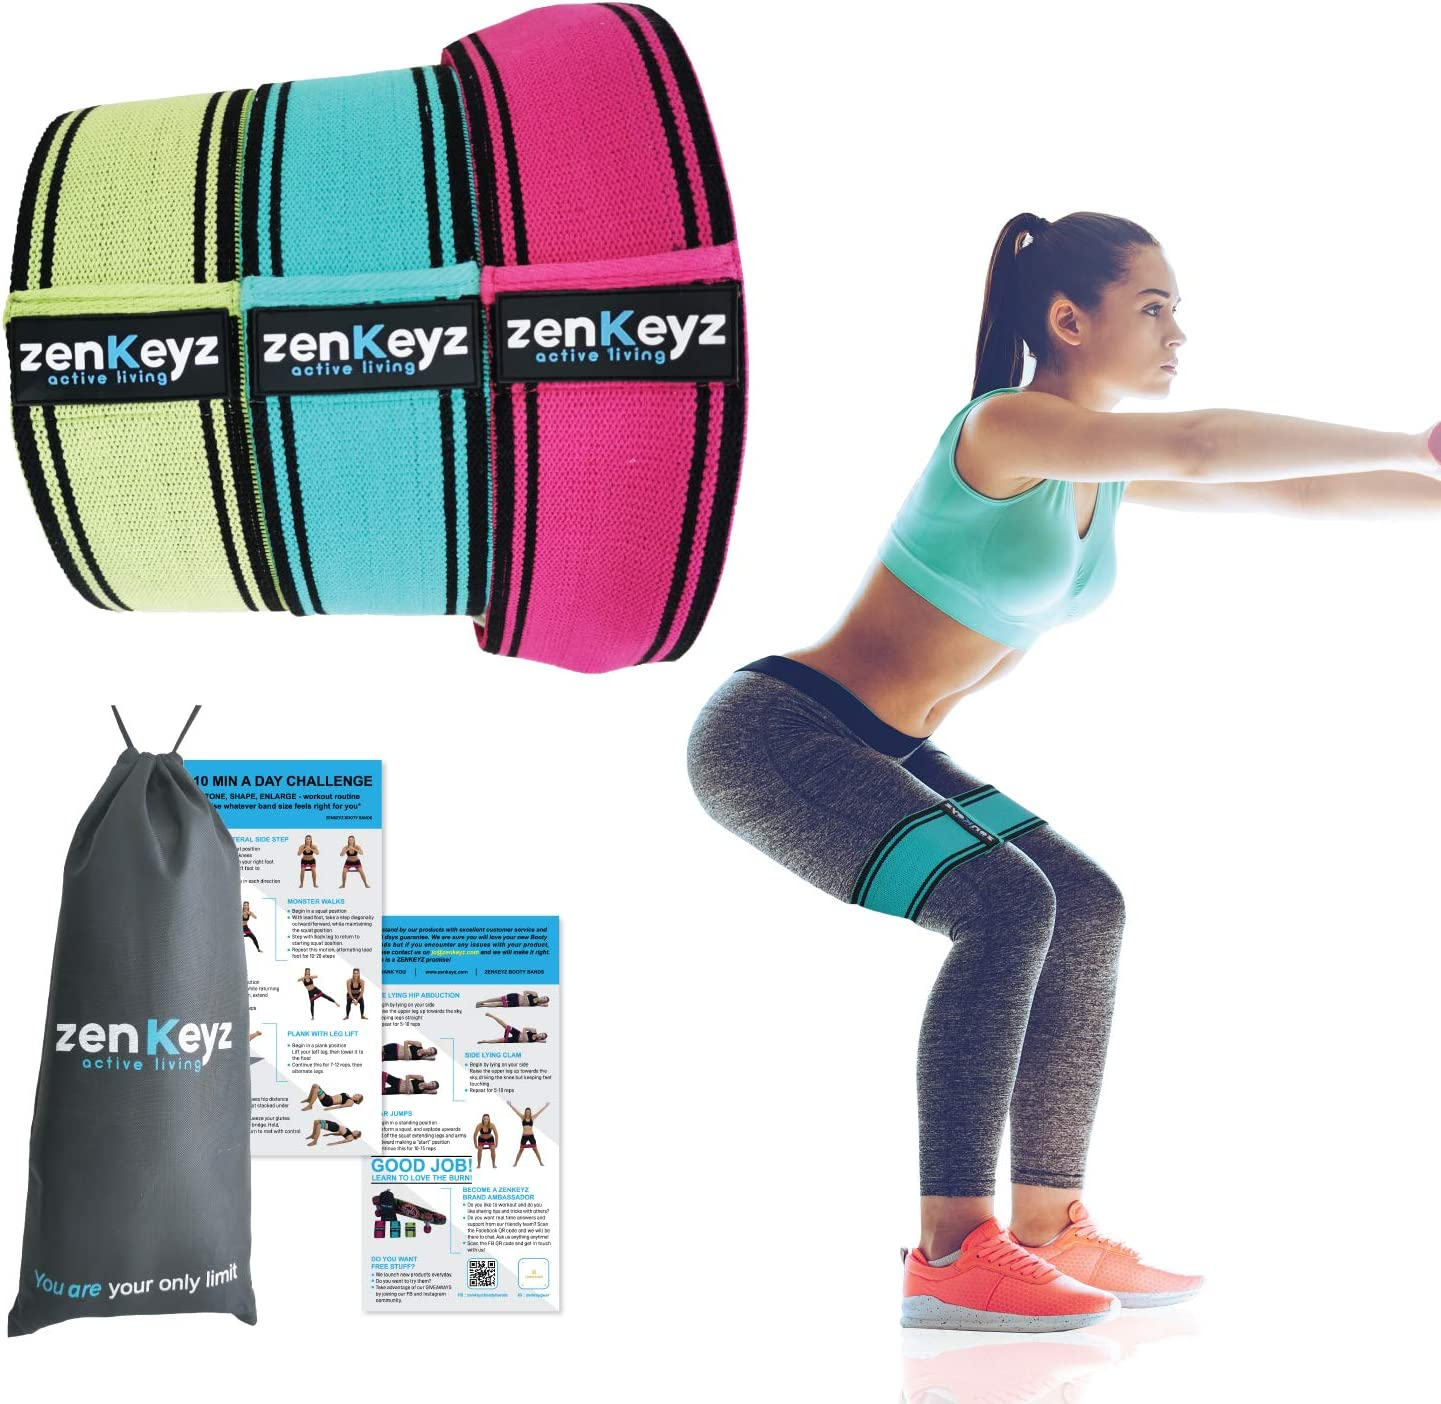 NEW Fabric Booty Resistance Hip Bands for Workout - Resistance Loop Bands - 3 Glute Elastic Bands - Booty Bands for Warm-up and squats - Exercise ...